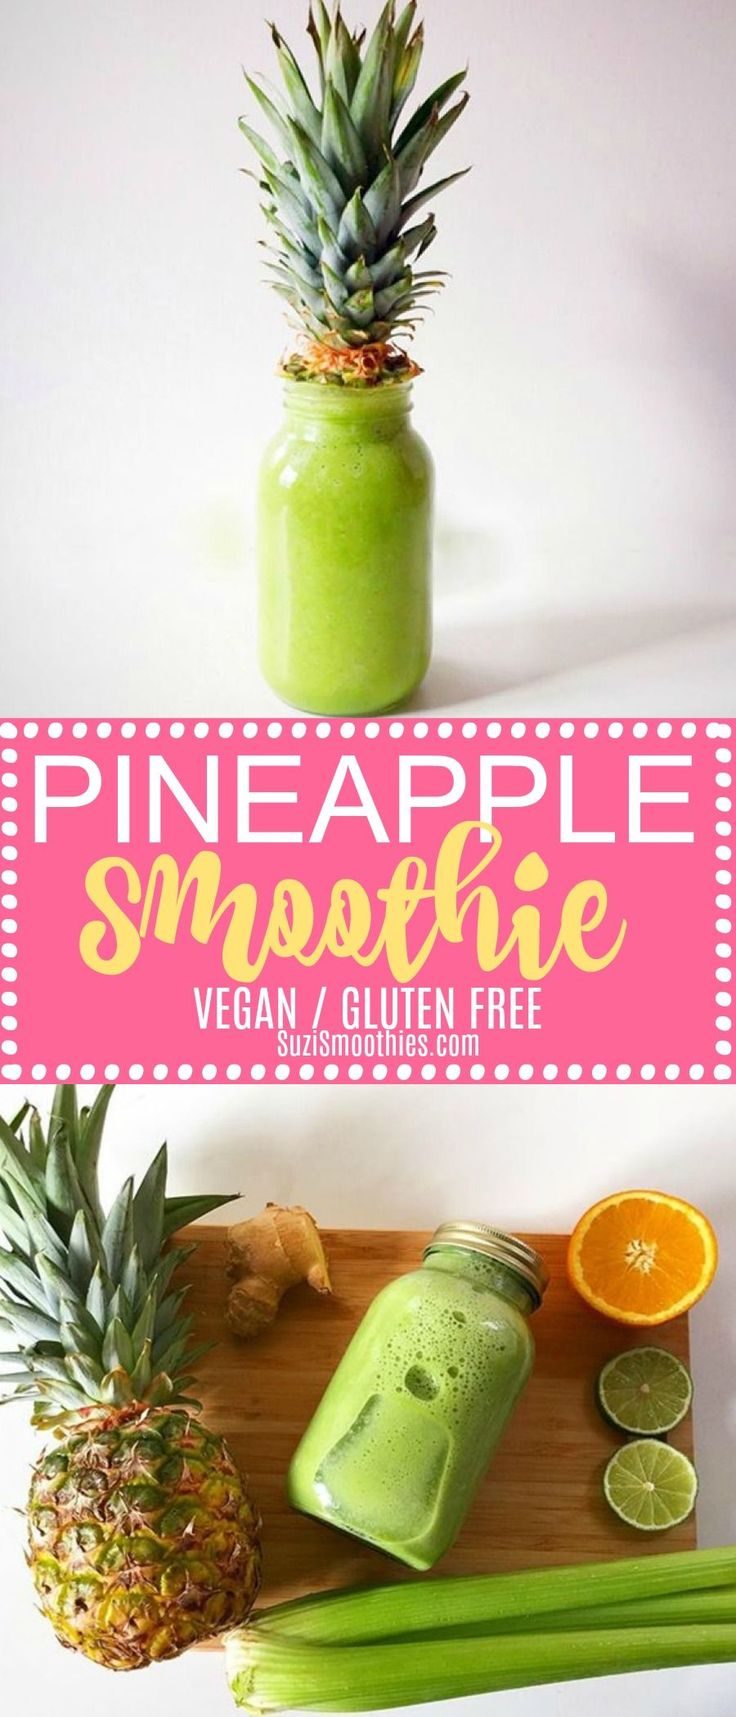 I've tried this smoothie recipe and I love it! It tastes so good and it's super healthy! I'm pinning it so I can refer back to the recipe any time!